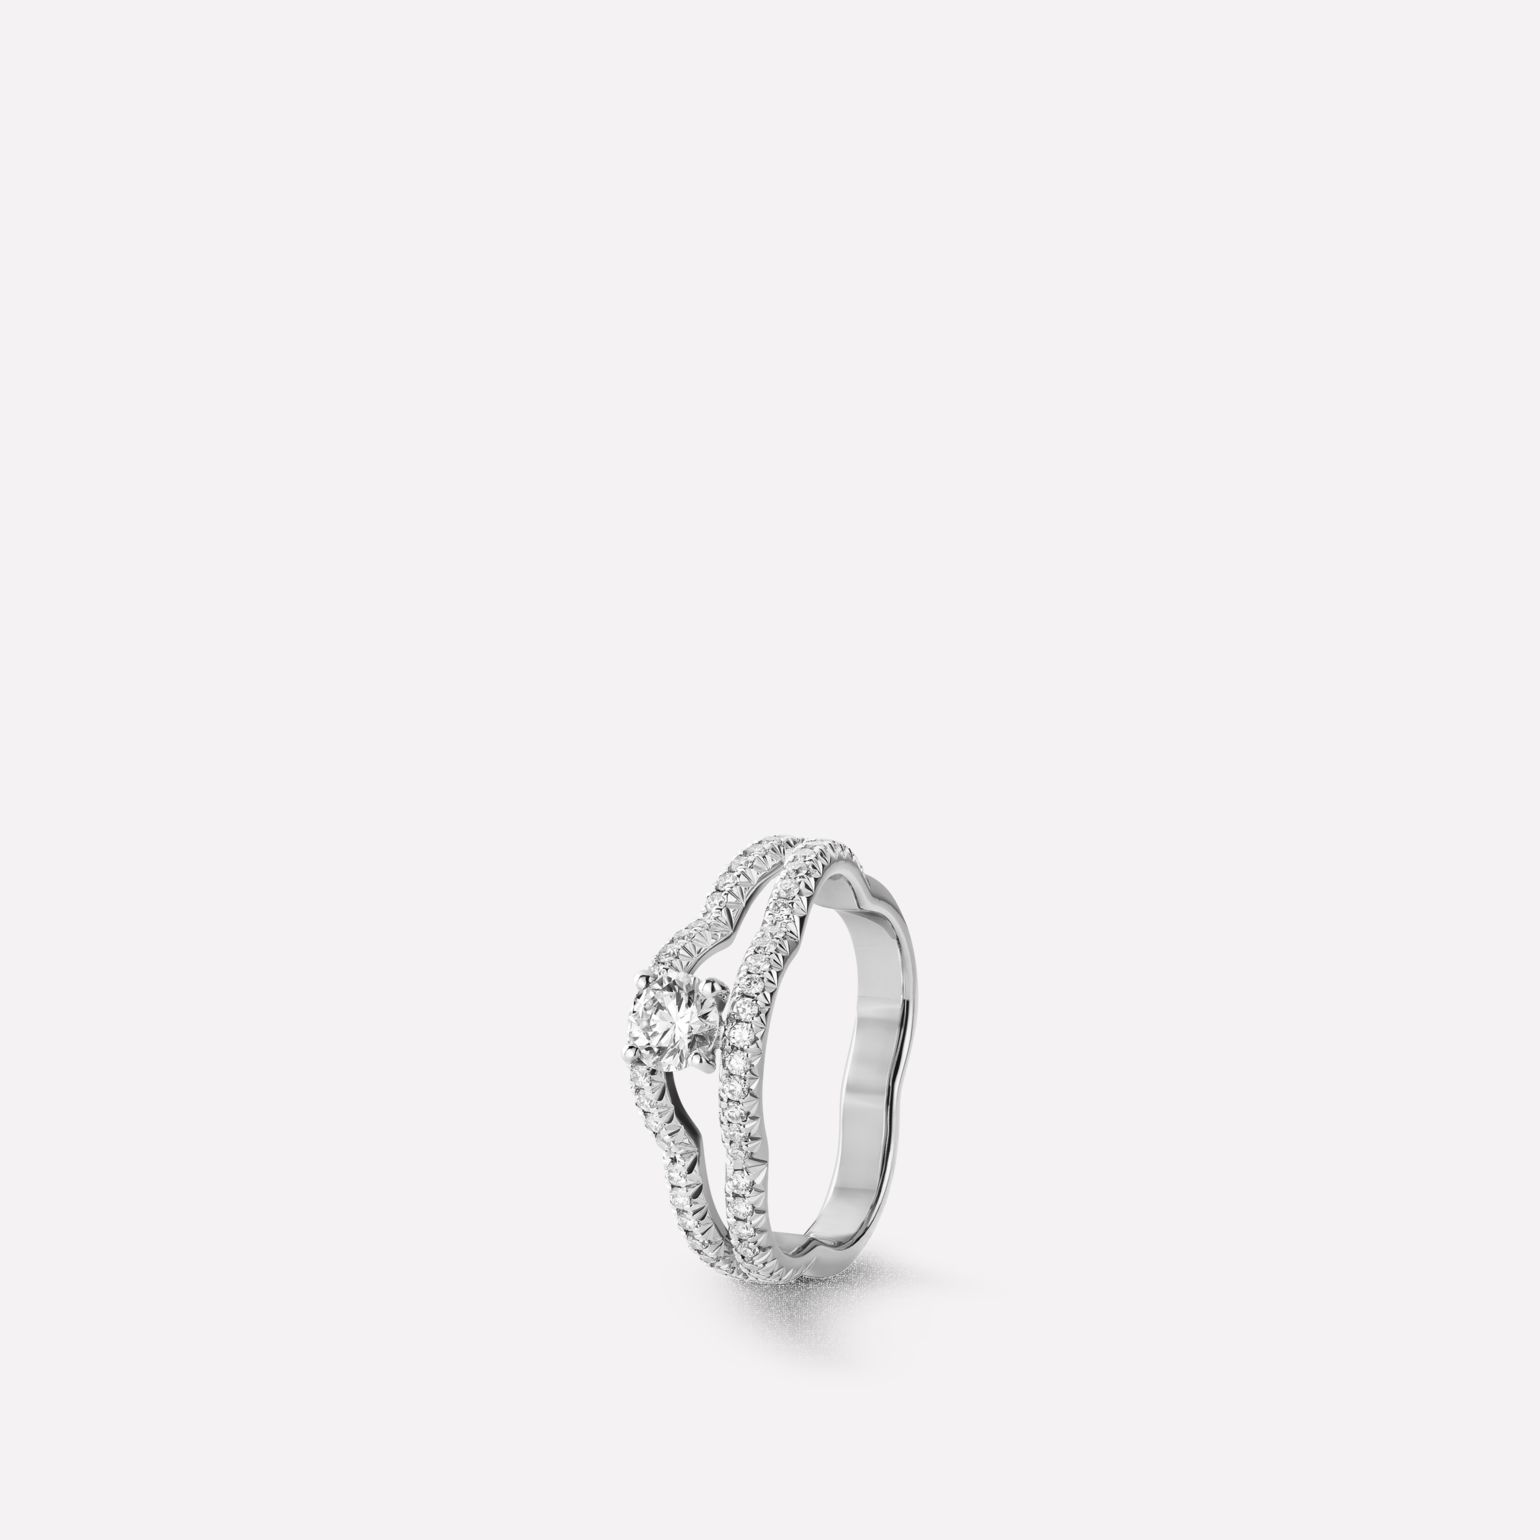 Camélia Ring Profil de Camélia ring in 18K white gold, diamonds and central diamond